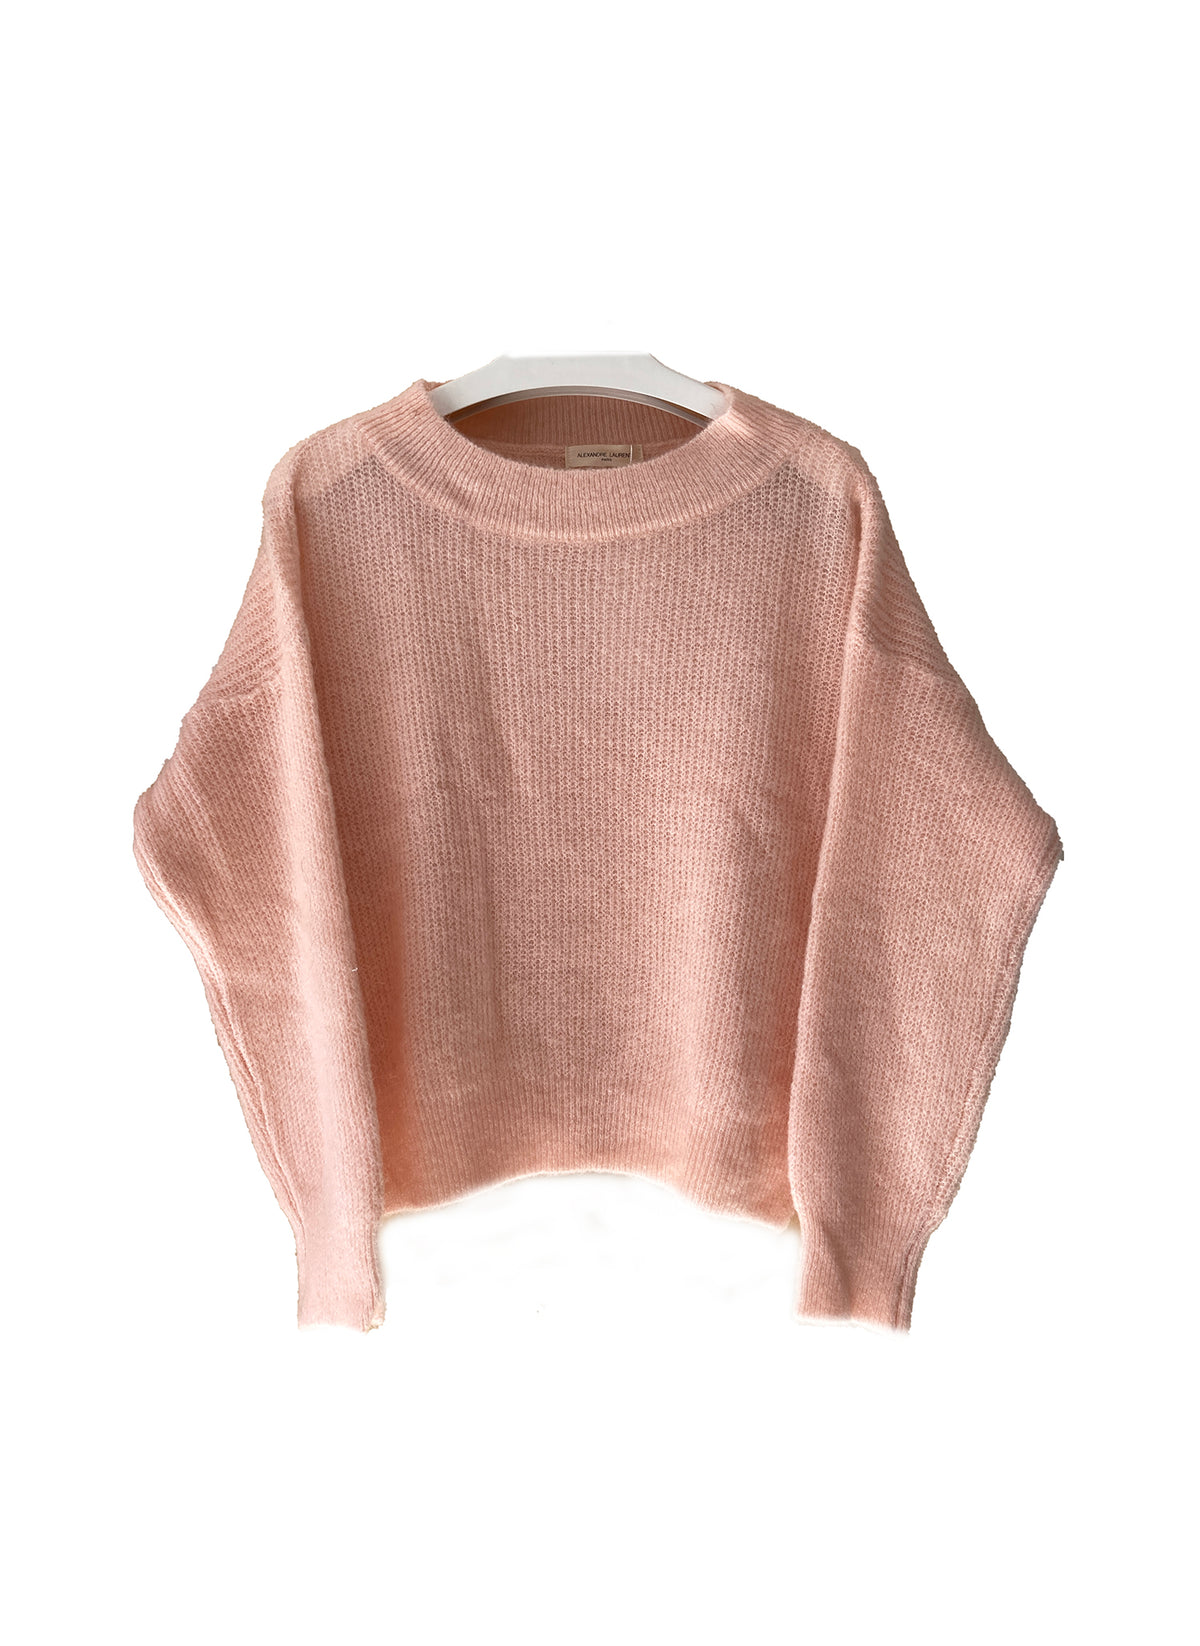 Soothe My Soul Sweater